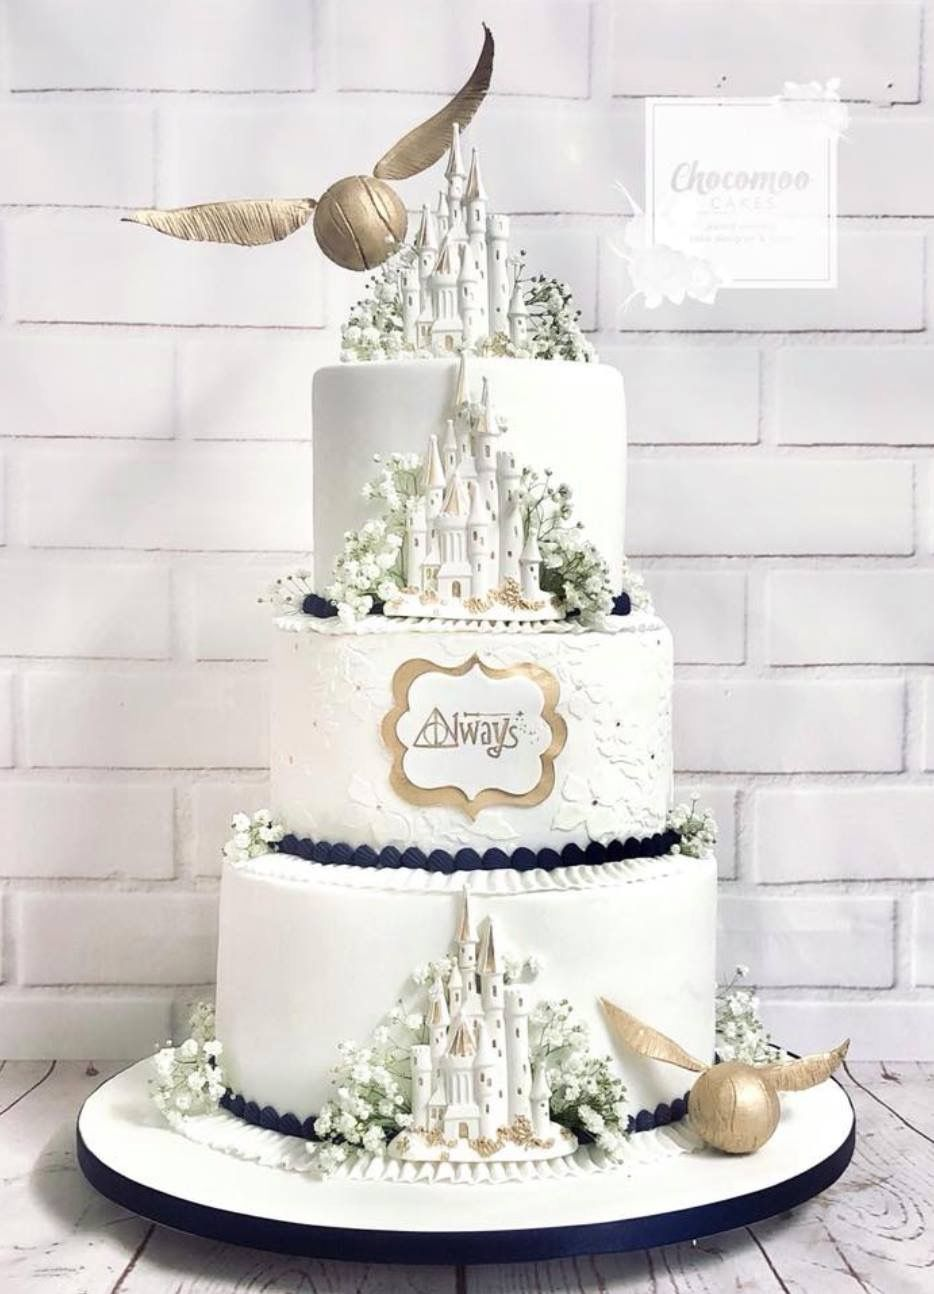 Harry Potter Wedding Cake.Pin By Taystormy On Cake Idea In 2019 Harry Potter Wedding